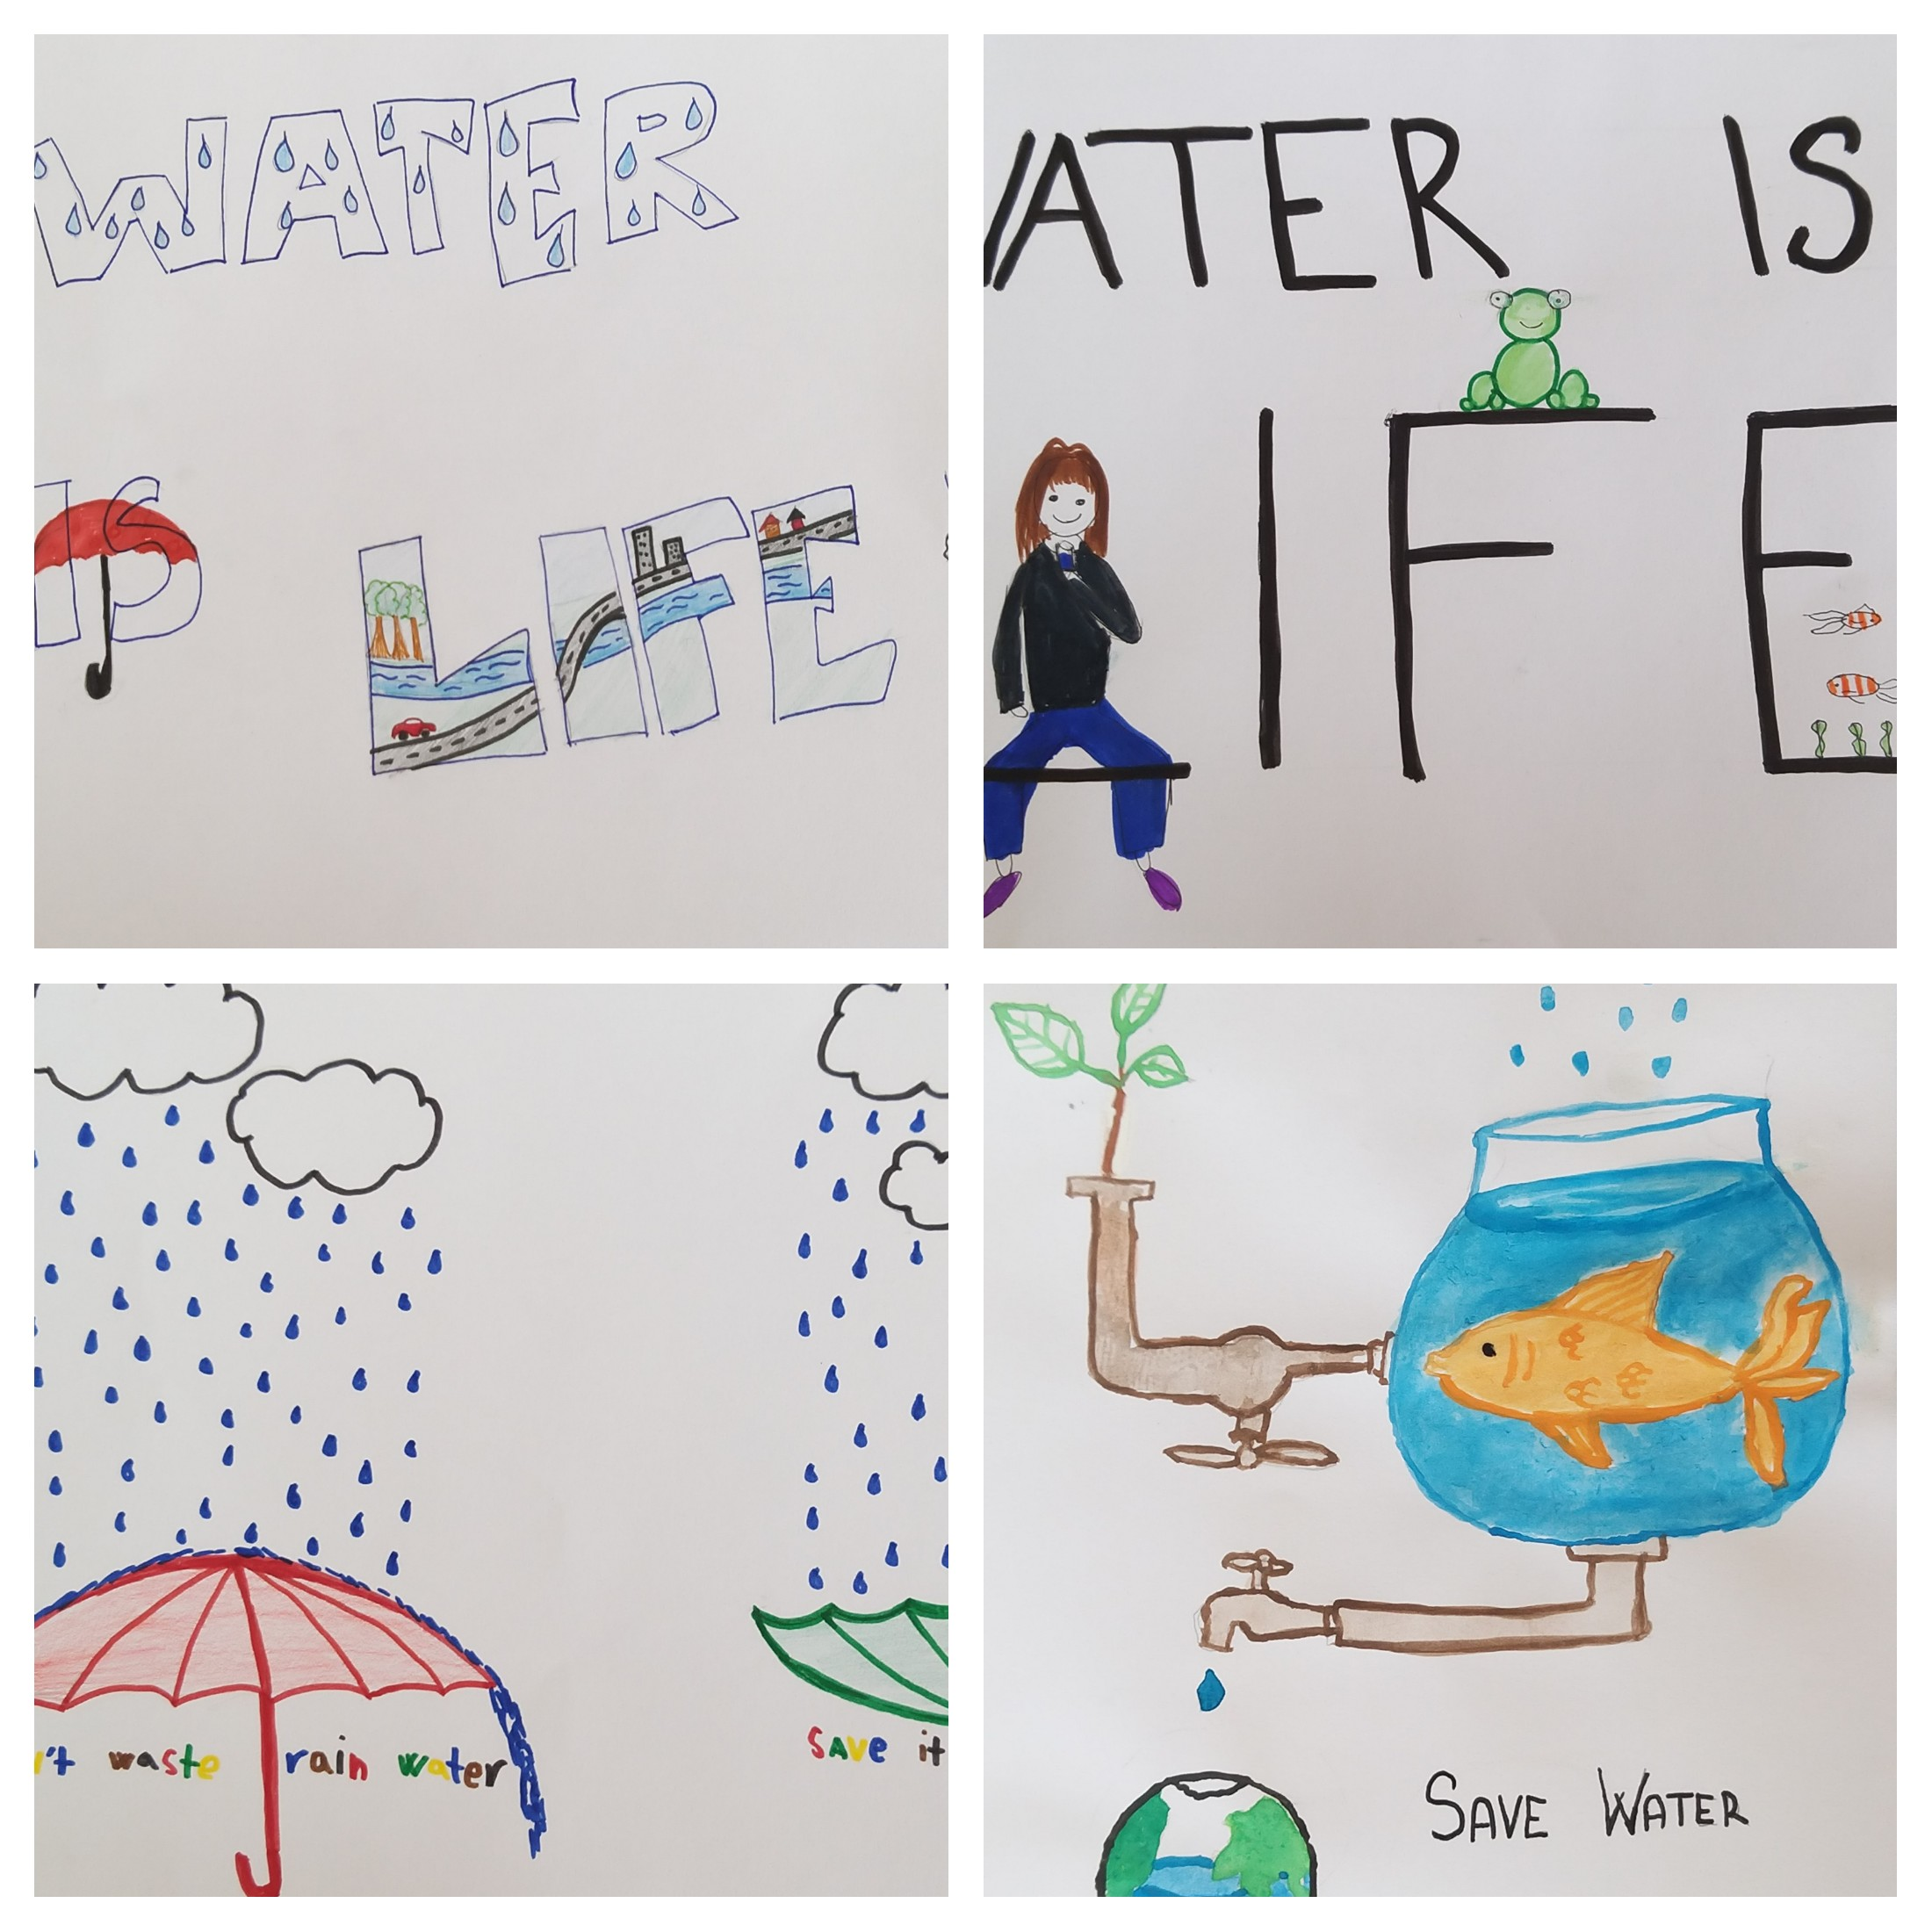 water-is-life-posters-2